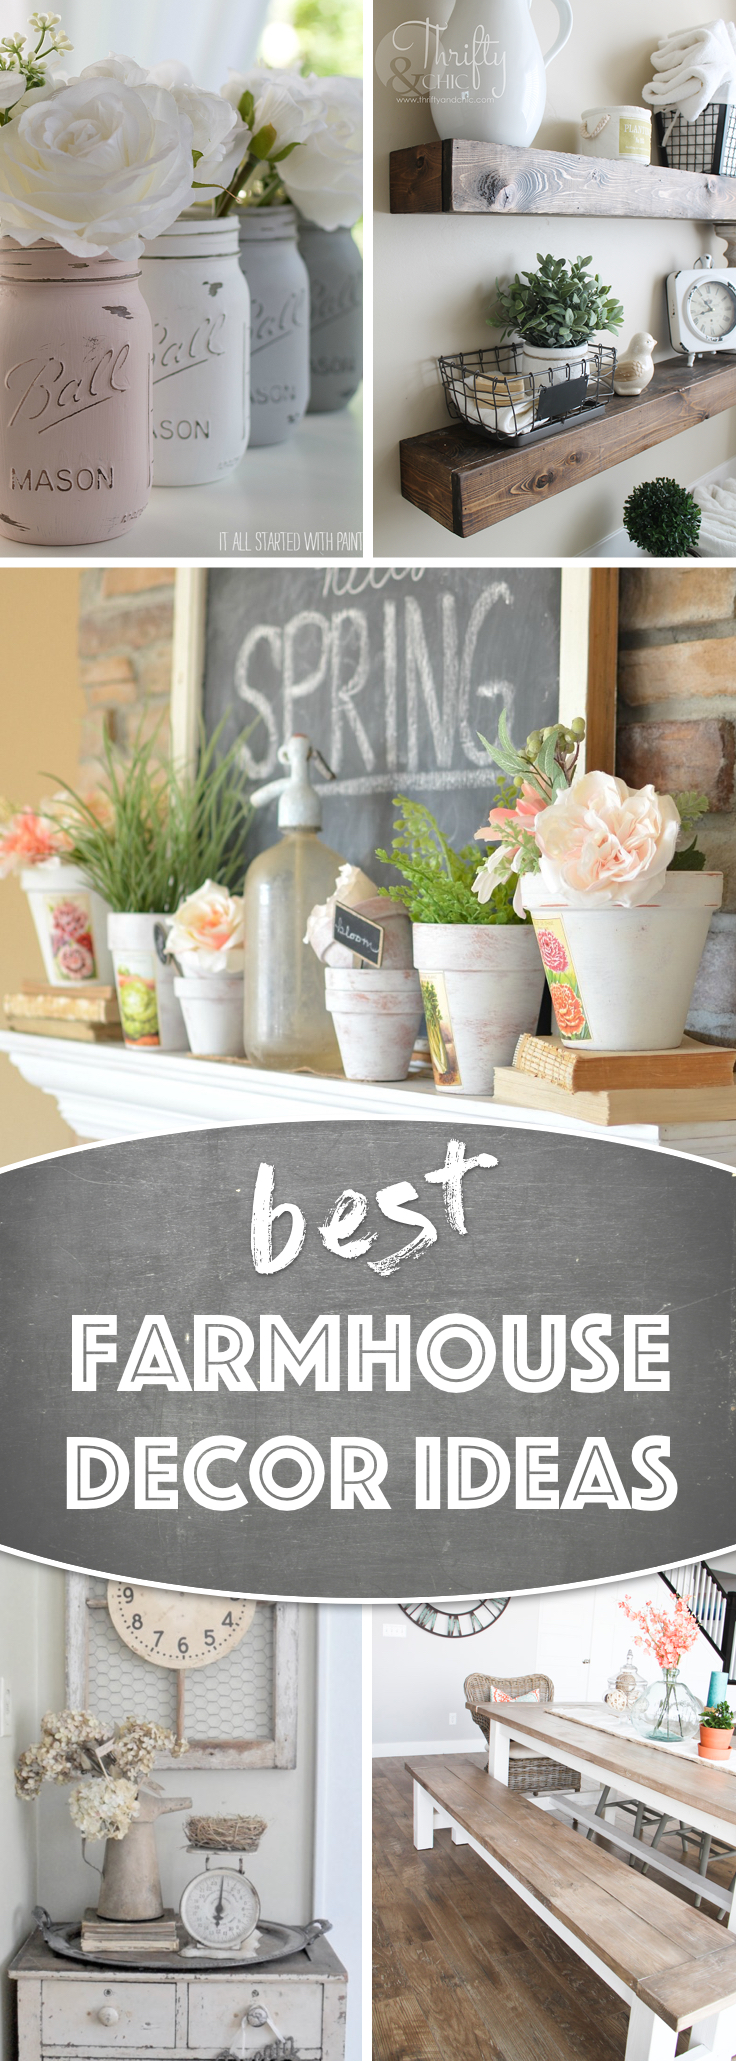 19 Awe Inspiring Farmhouse Decor Ideas to Transform Your Home Exceptionally